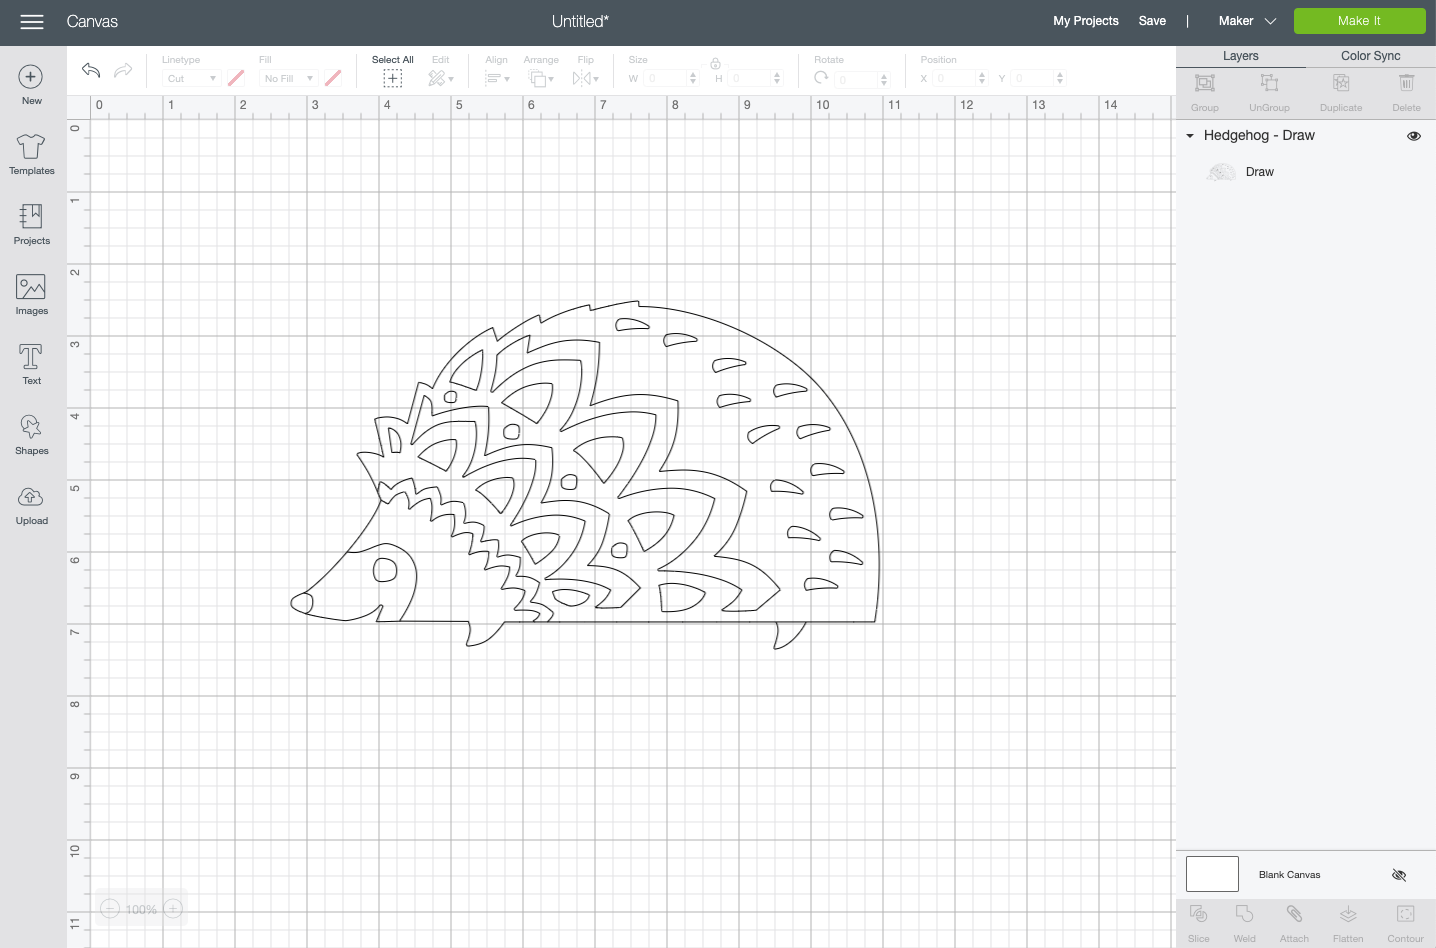 Cricut Design Space: hedgehog draw image on Canvas